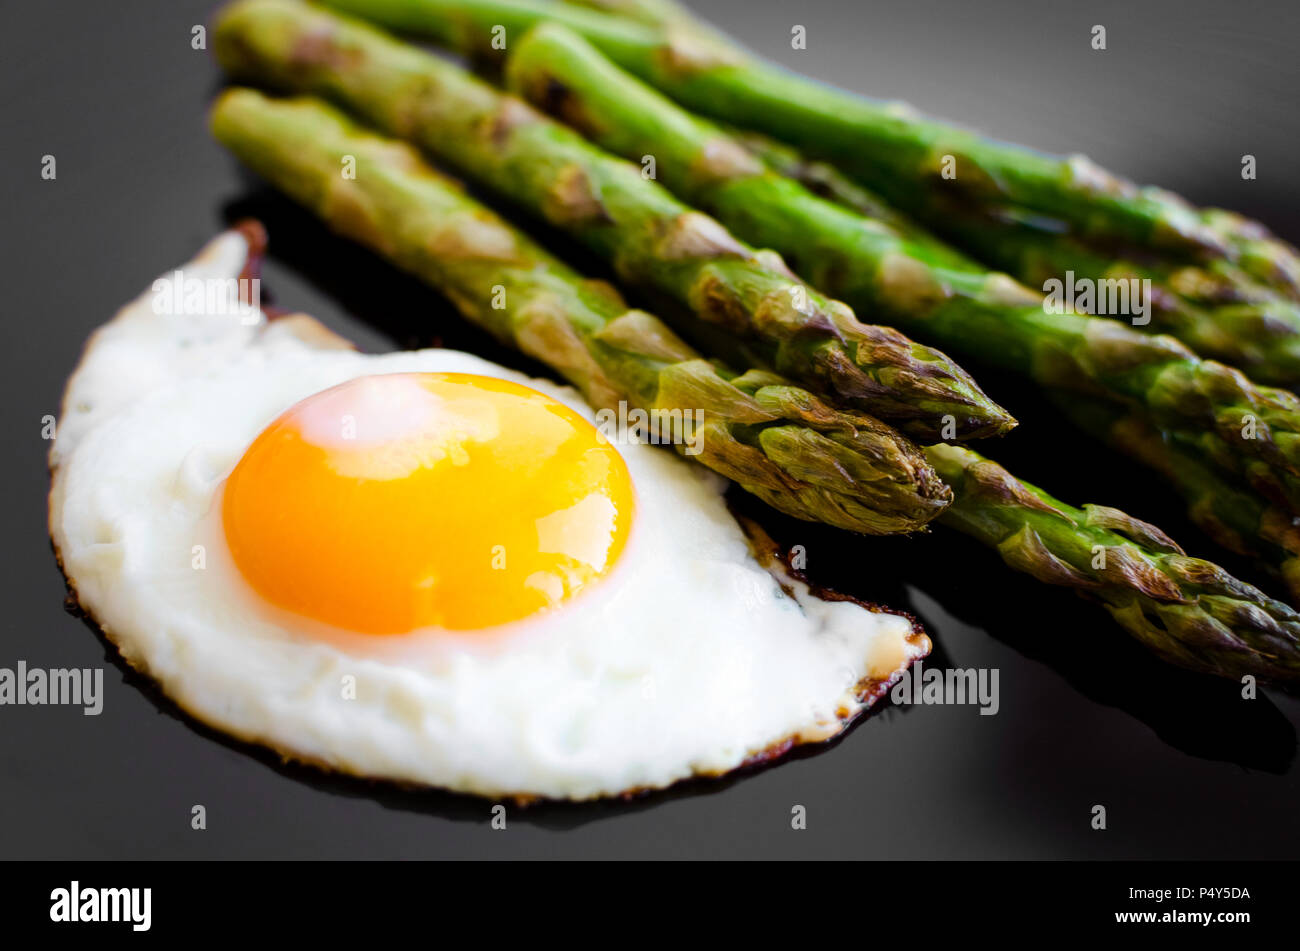 Fried egg and roasted fresh asparagus in black plate. Healthy lunch concept. Delicious, nutritious eating. - Stock Image